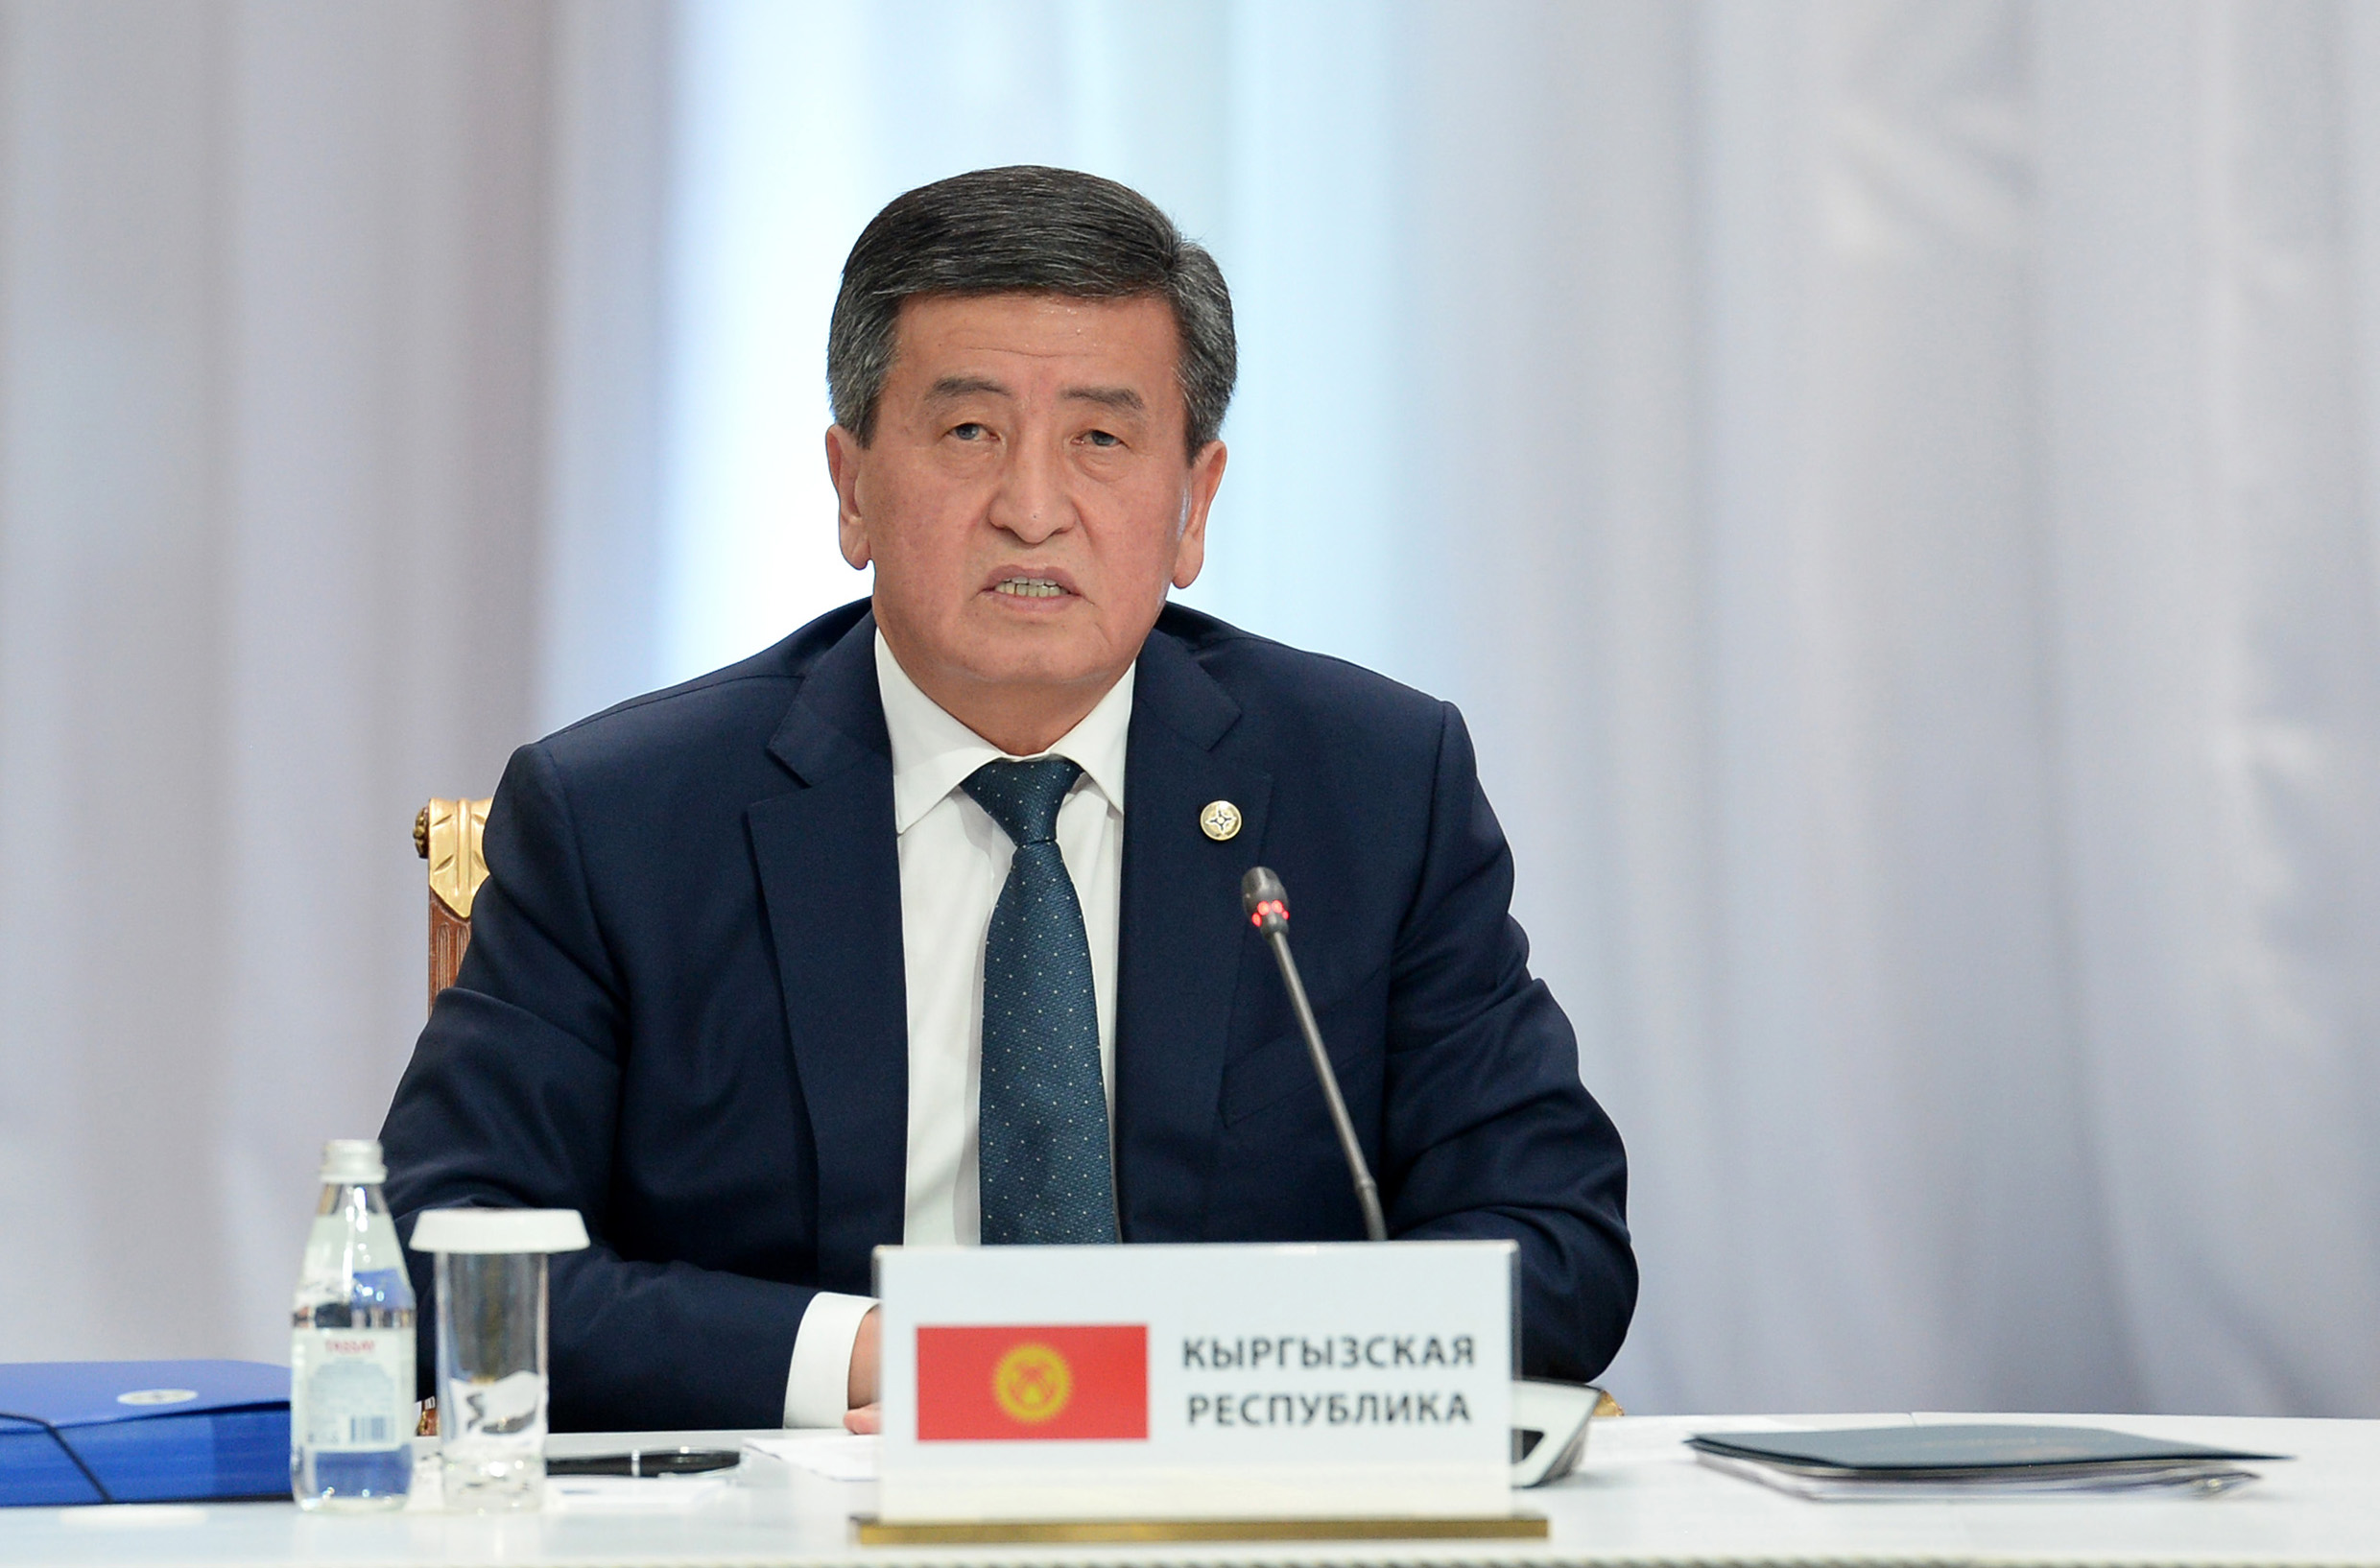 Through gritted teeth: Jeenbekov's administration is trying not to rock the boat on Xinjiang. (Photo: Kyrgyz presidential website)